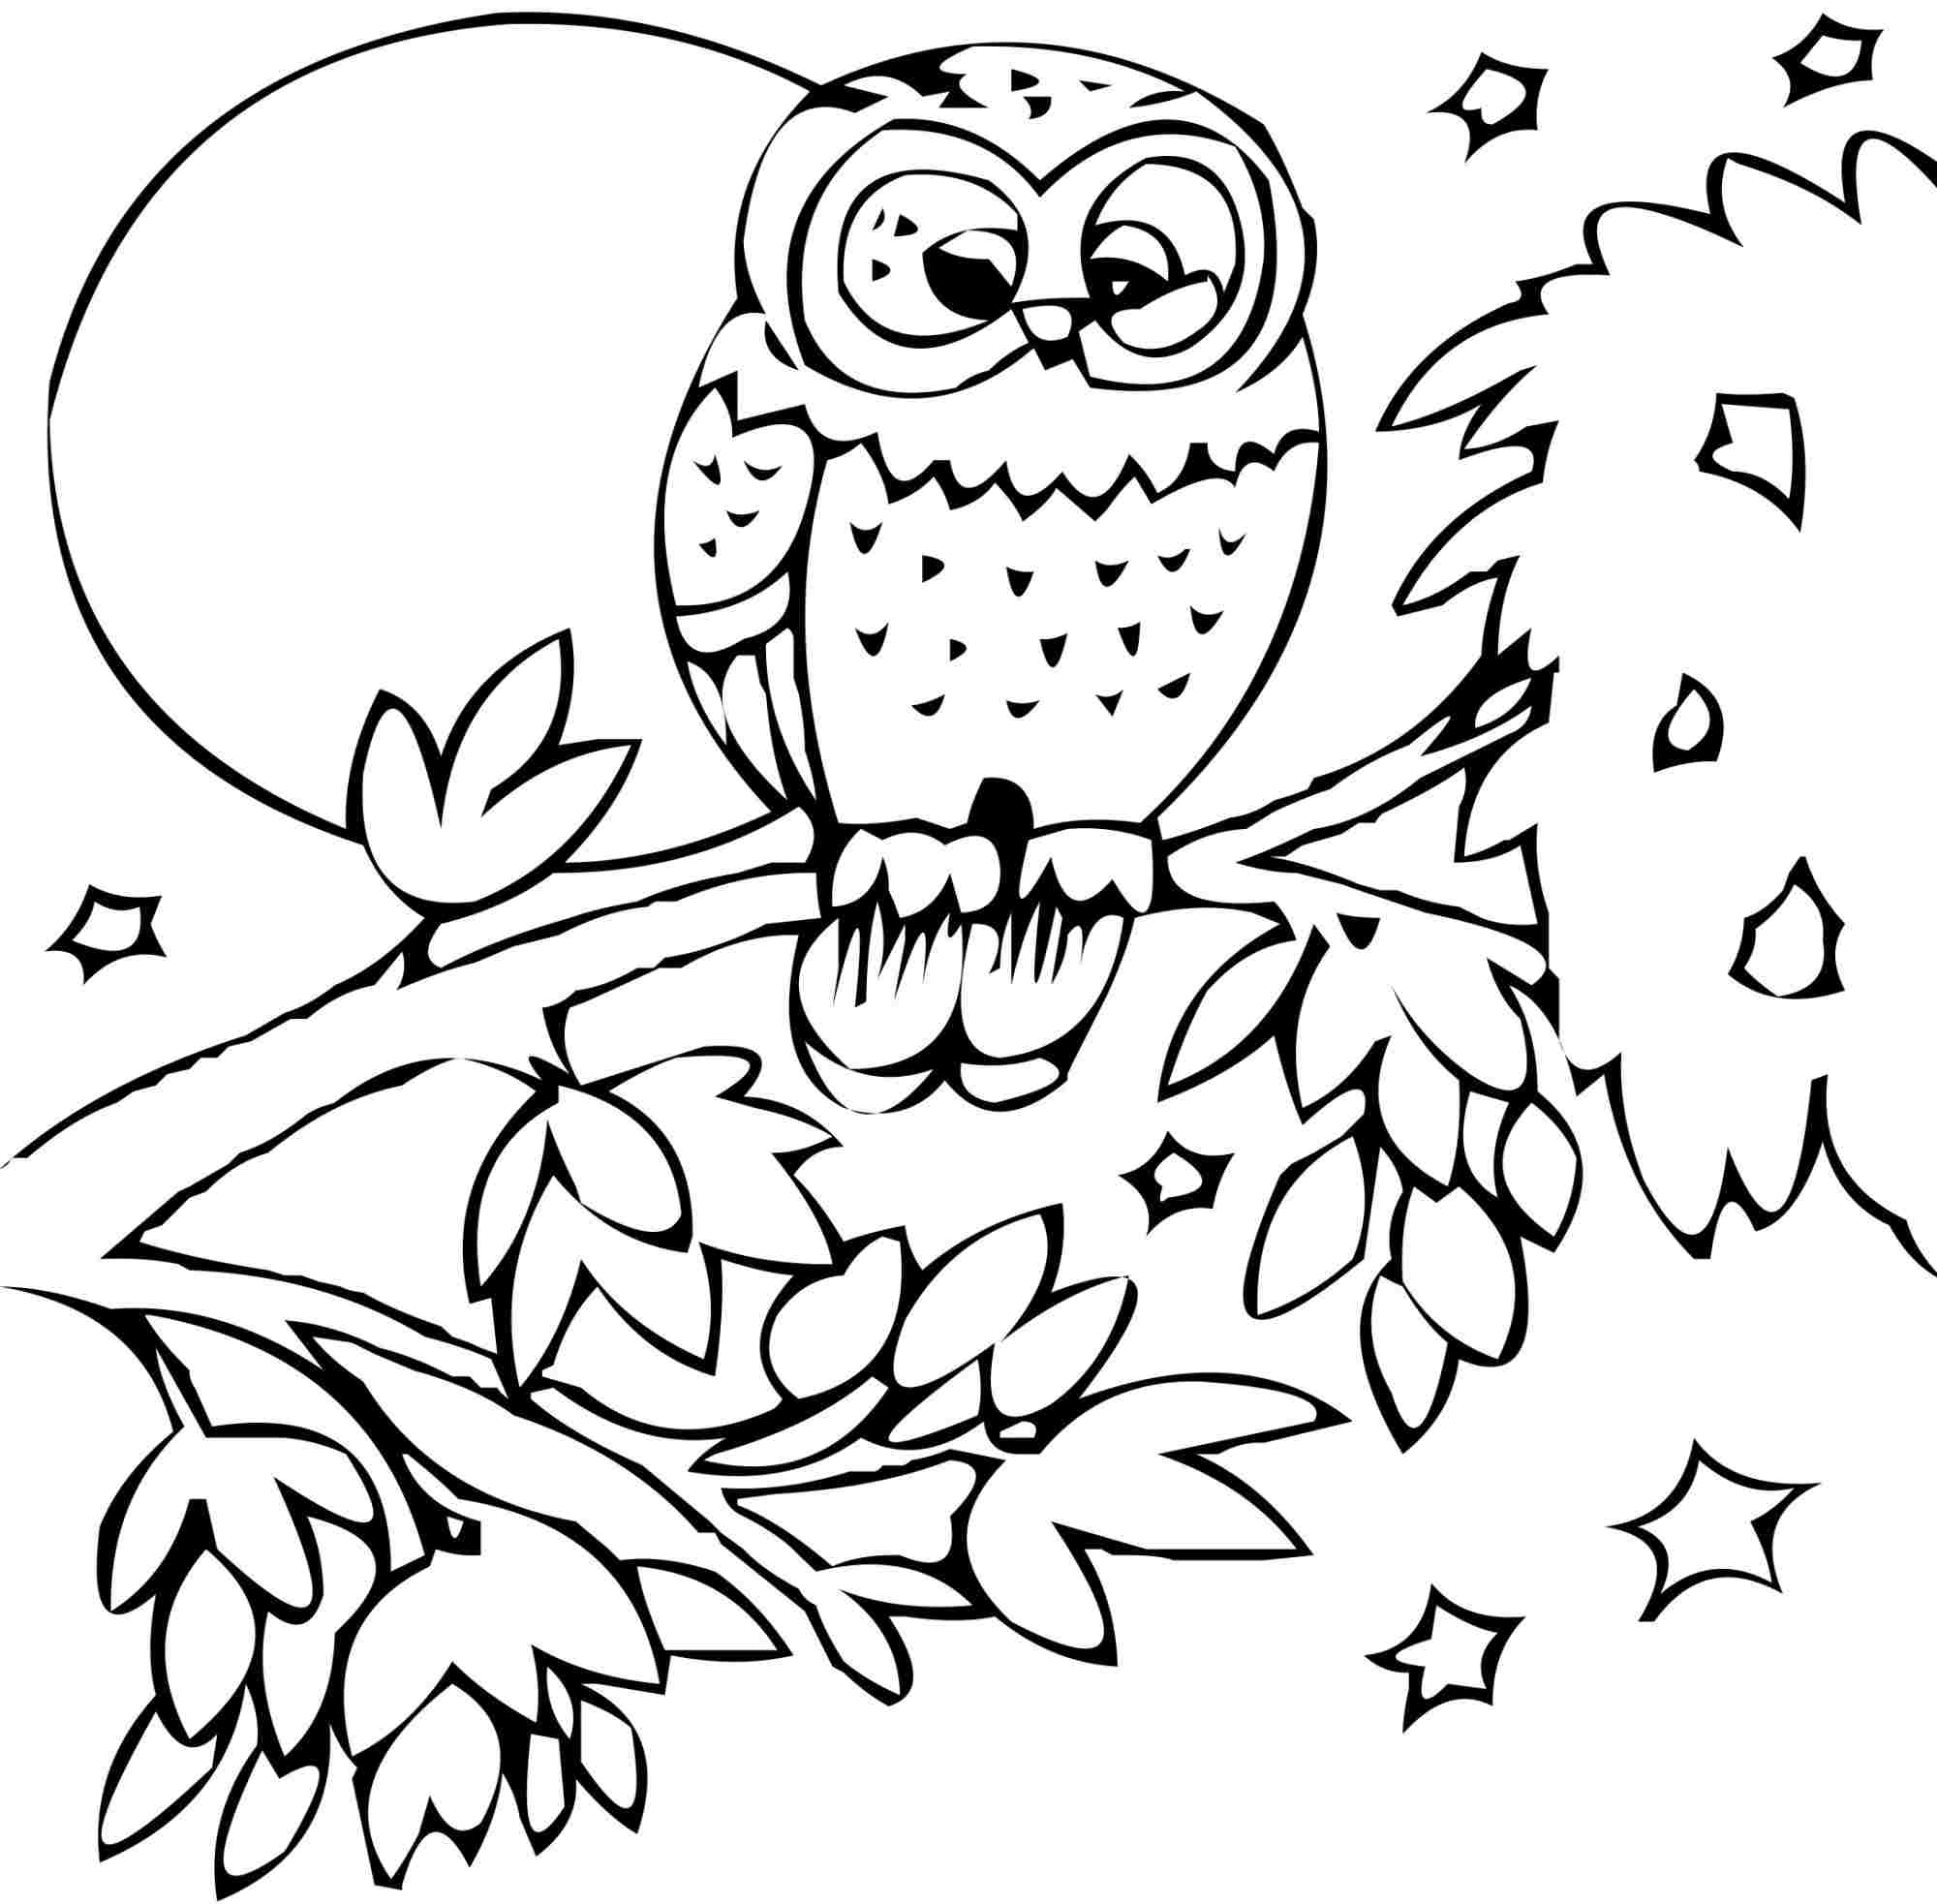 2000x1966 Printable Zoo Animal Coloring Pages Vitlt Free